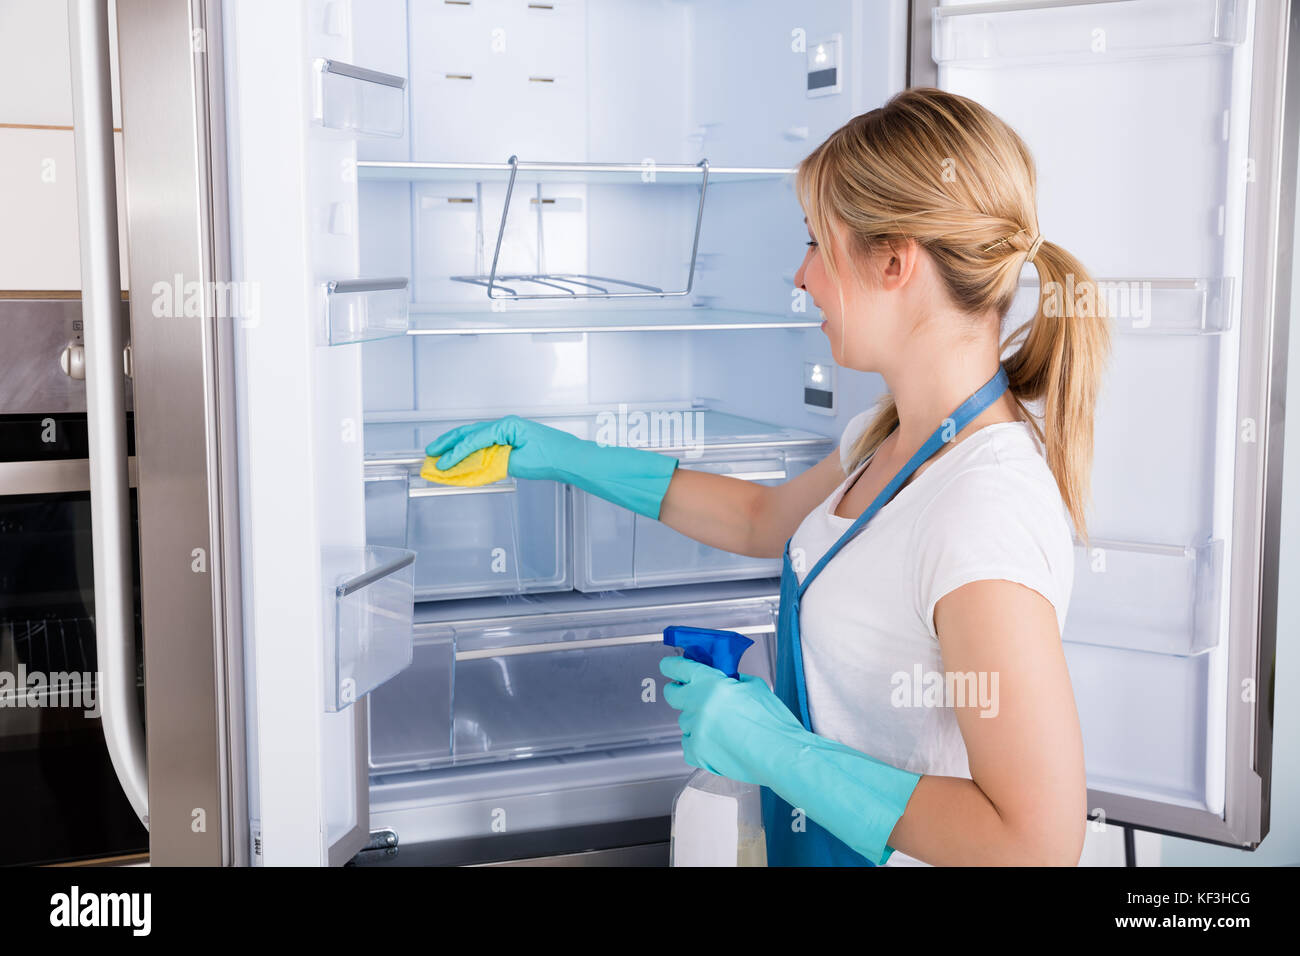 Young Smiling Professional Janitor Woman Cleaning Empty Refrigerator In Kitchen - Stock Image